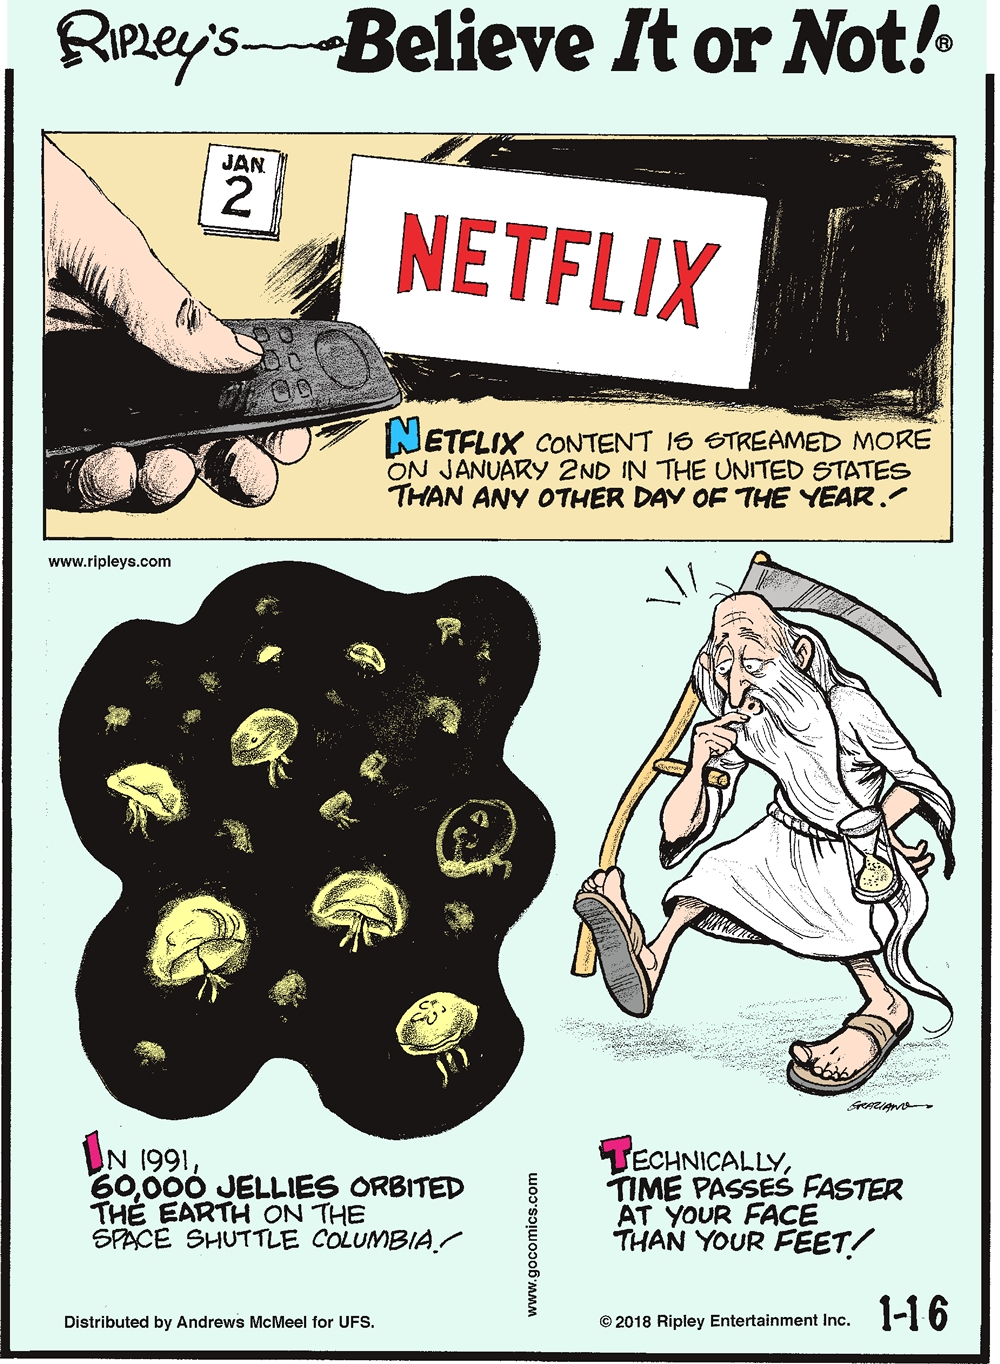 Netflix content is streamed more on January 2nd in the United States than any other day of the year!-------------------- In 1991, 60,000 jellies orbited the Earth on the space shuttle Columbia!-------------------- Technically, time passes faster at your face than your feet!